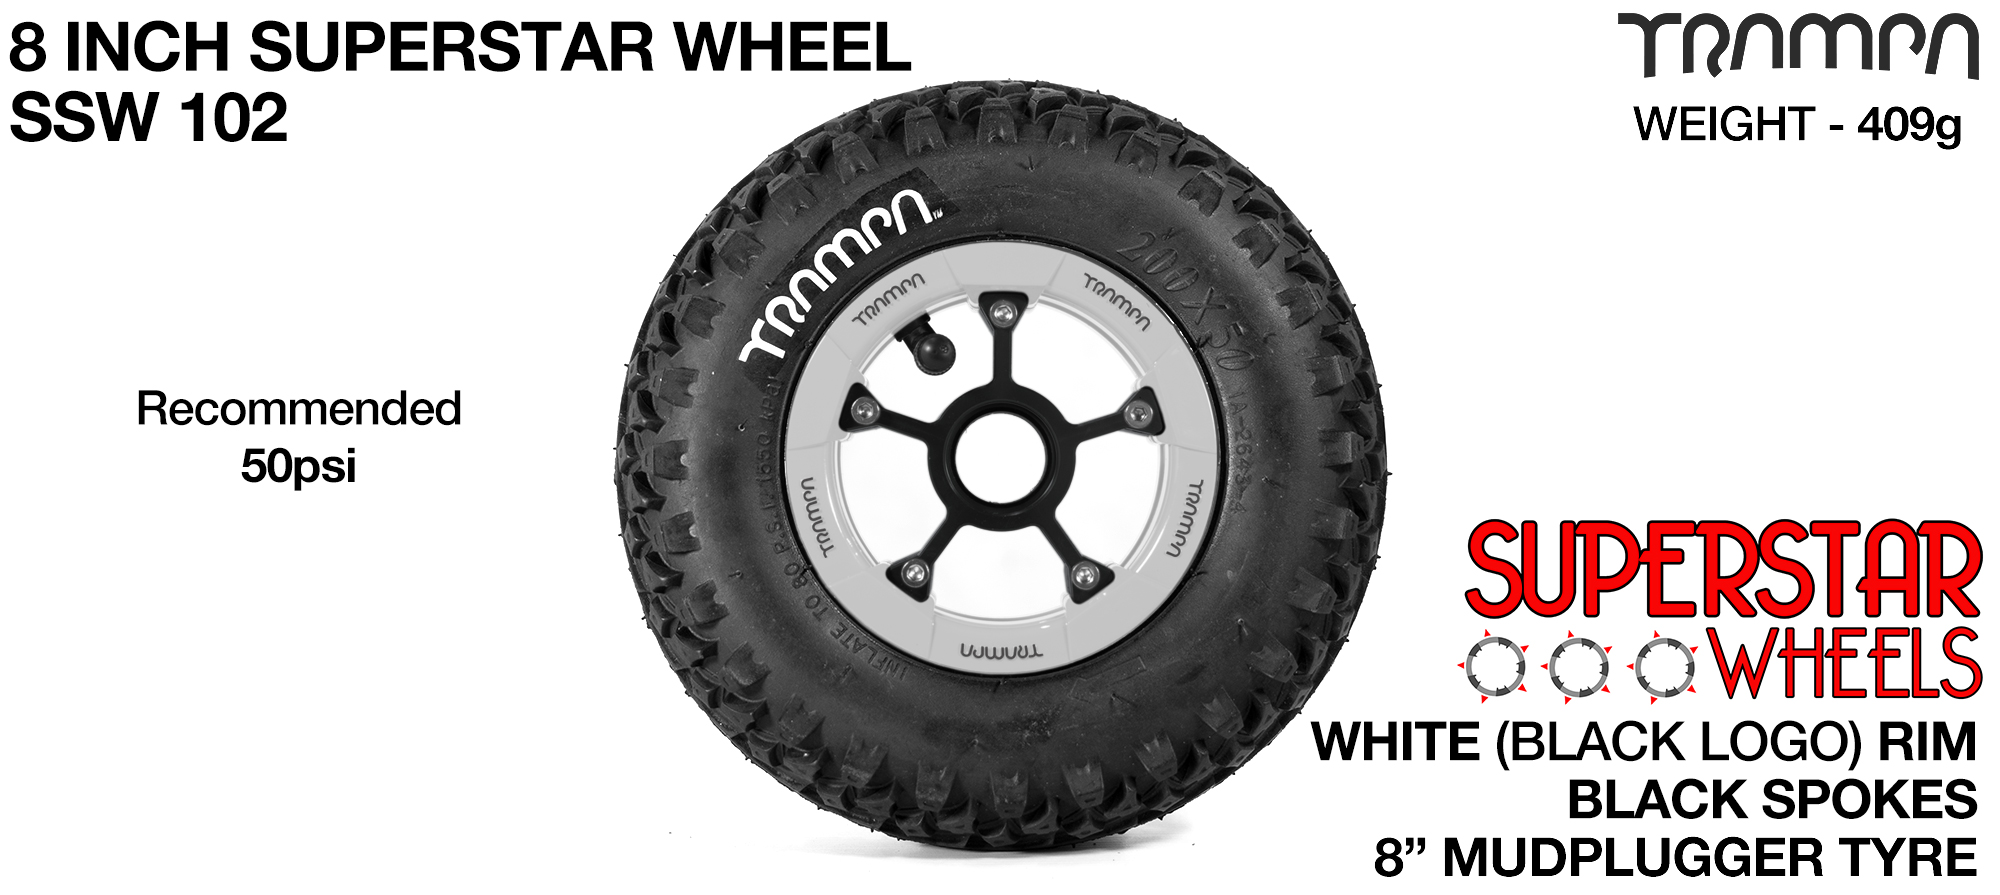 Superstar 8 inch wheels -  White Gloss Rim Black Anodised Spokes & Mud Plugger 8 Inch Tyre